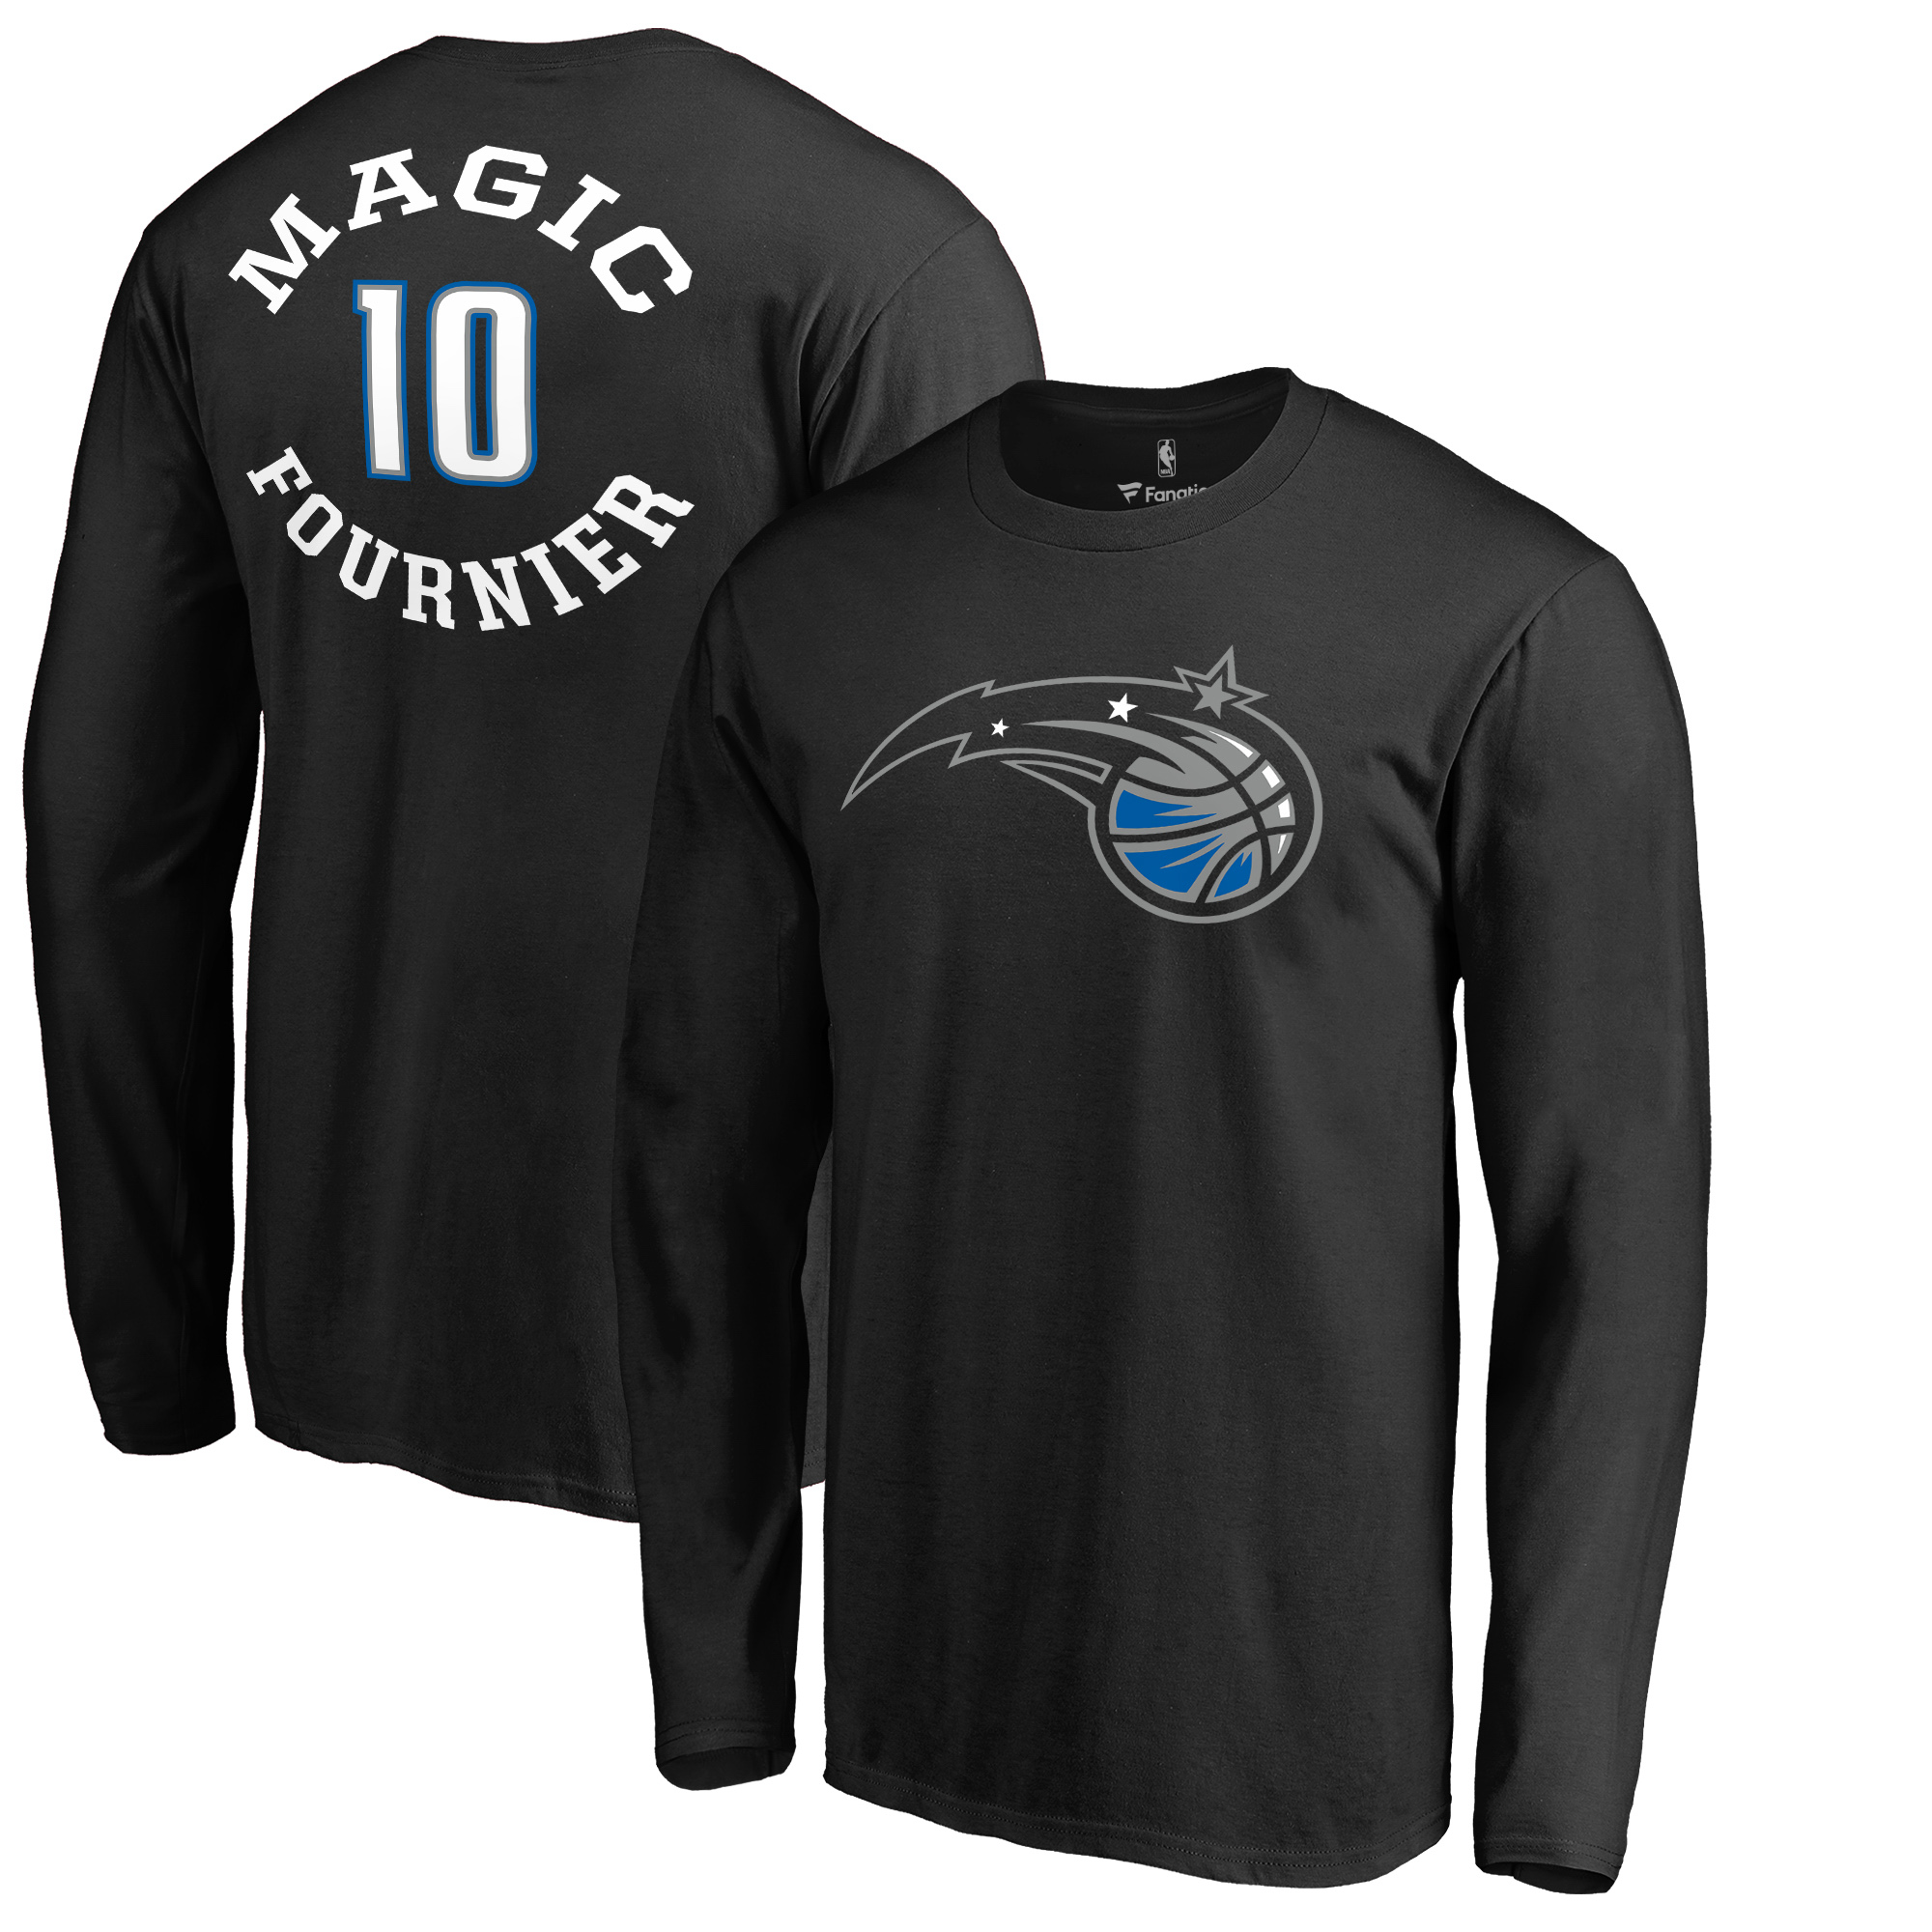 Evan Fournier Orlando Magic Fanatics Branded Round About Name & Number Long Sleeve T-Shirt - Black